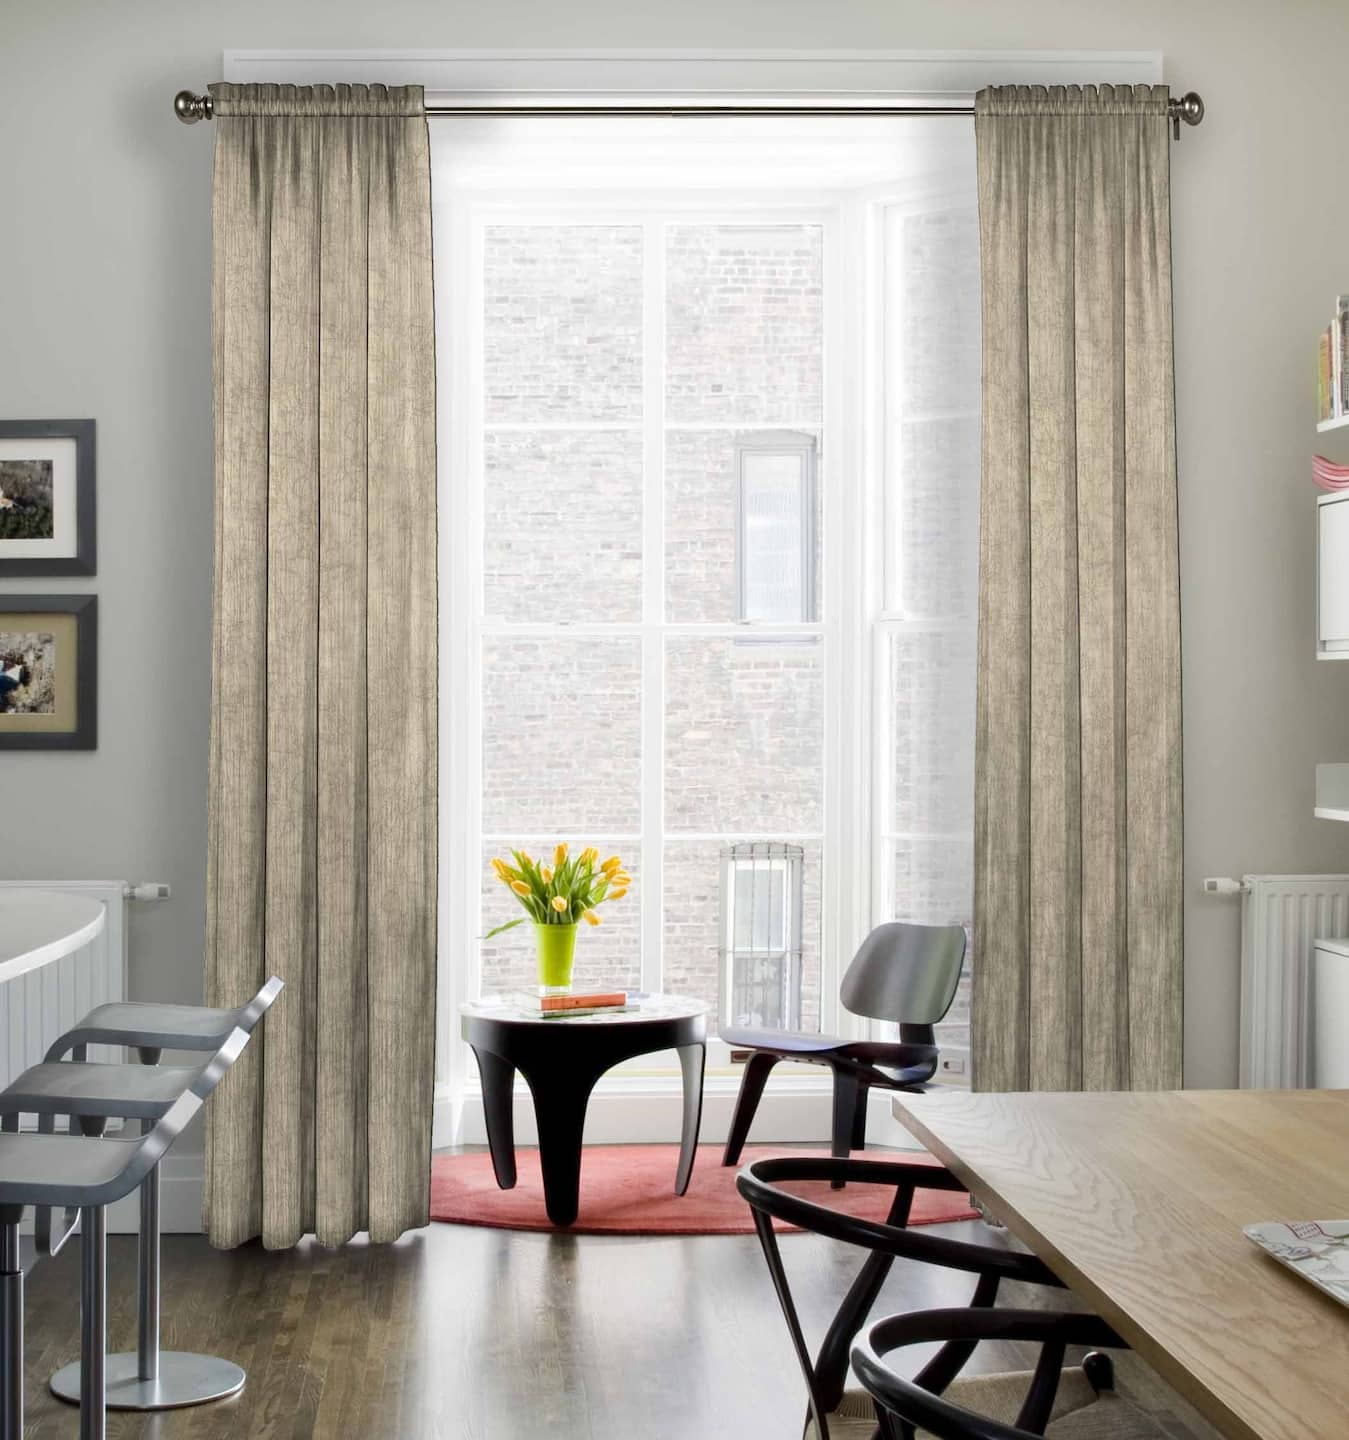 Modern Dining Room With Off White Curtains In A Subtle Pattern Framing Tall